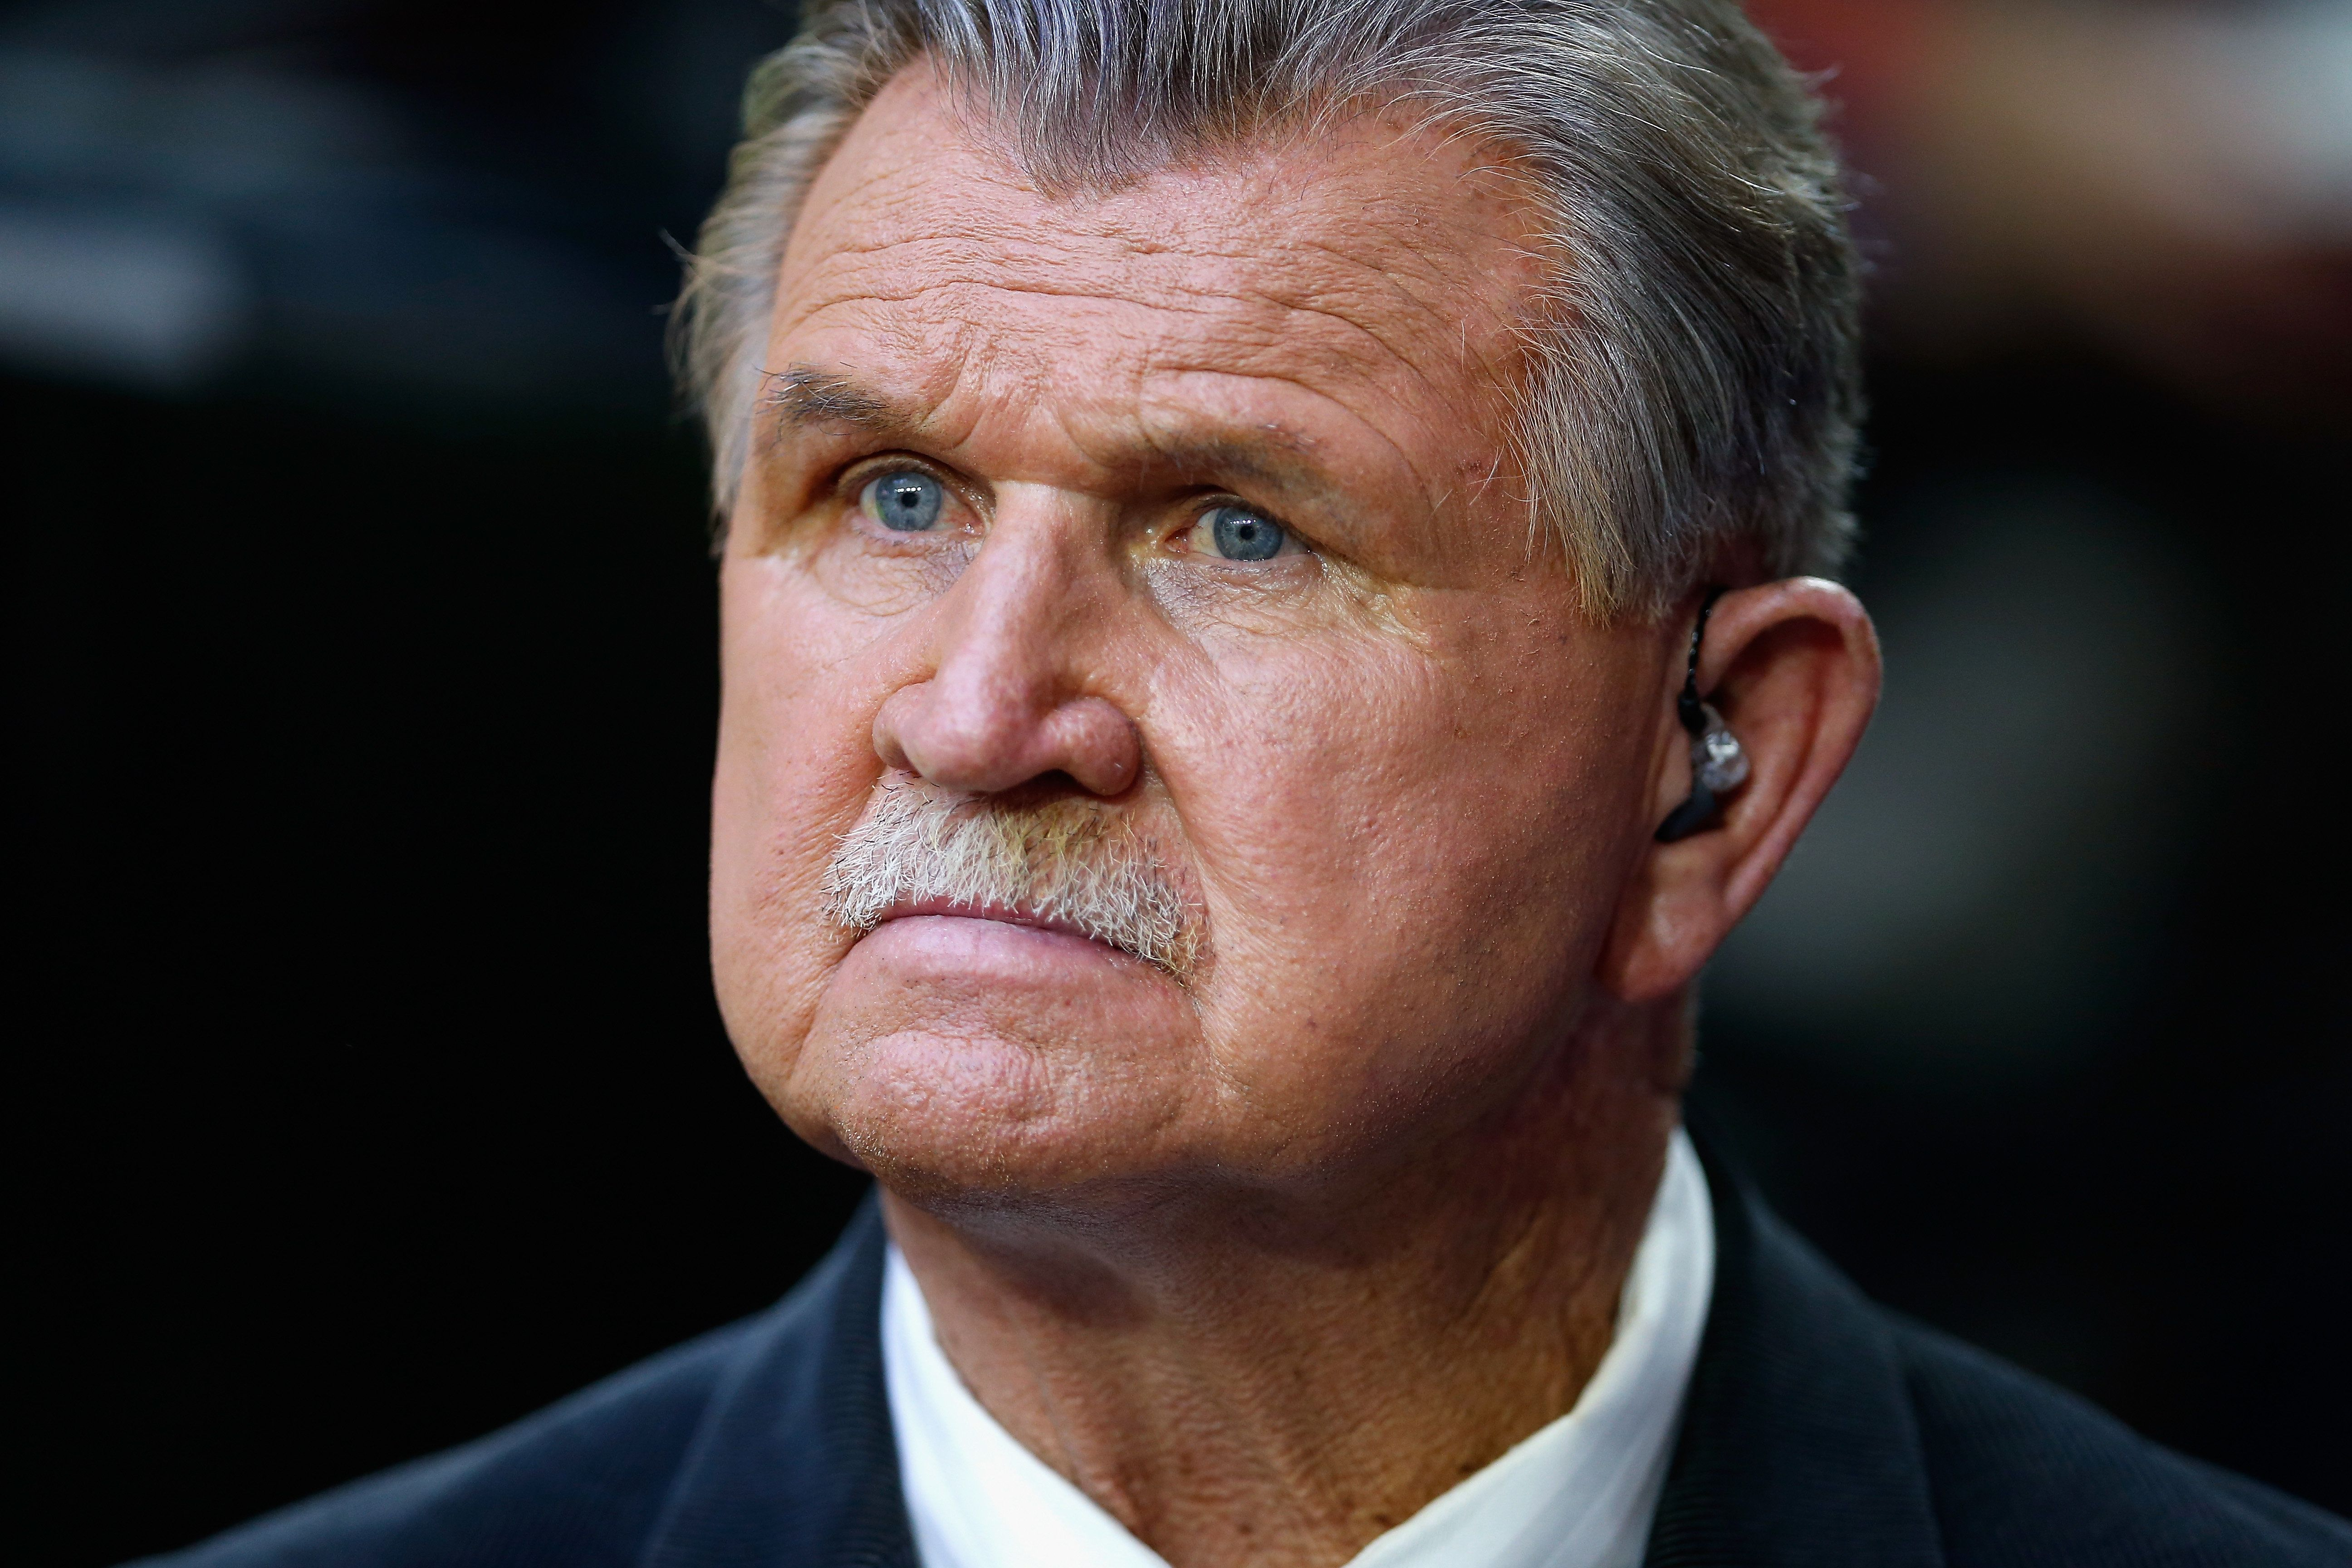 GLENDALE, AZ - JANUARY 25:  Former American football player, coach, and television commentator Mike Ditka during the 2015 Pro Bowl at University of Phoenix Stadium on January 25, 2015 in Glendale, Arizona.  (Photo by Christian Petersen/Getty Images)